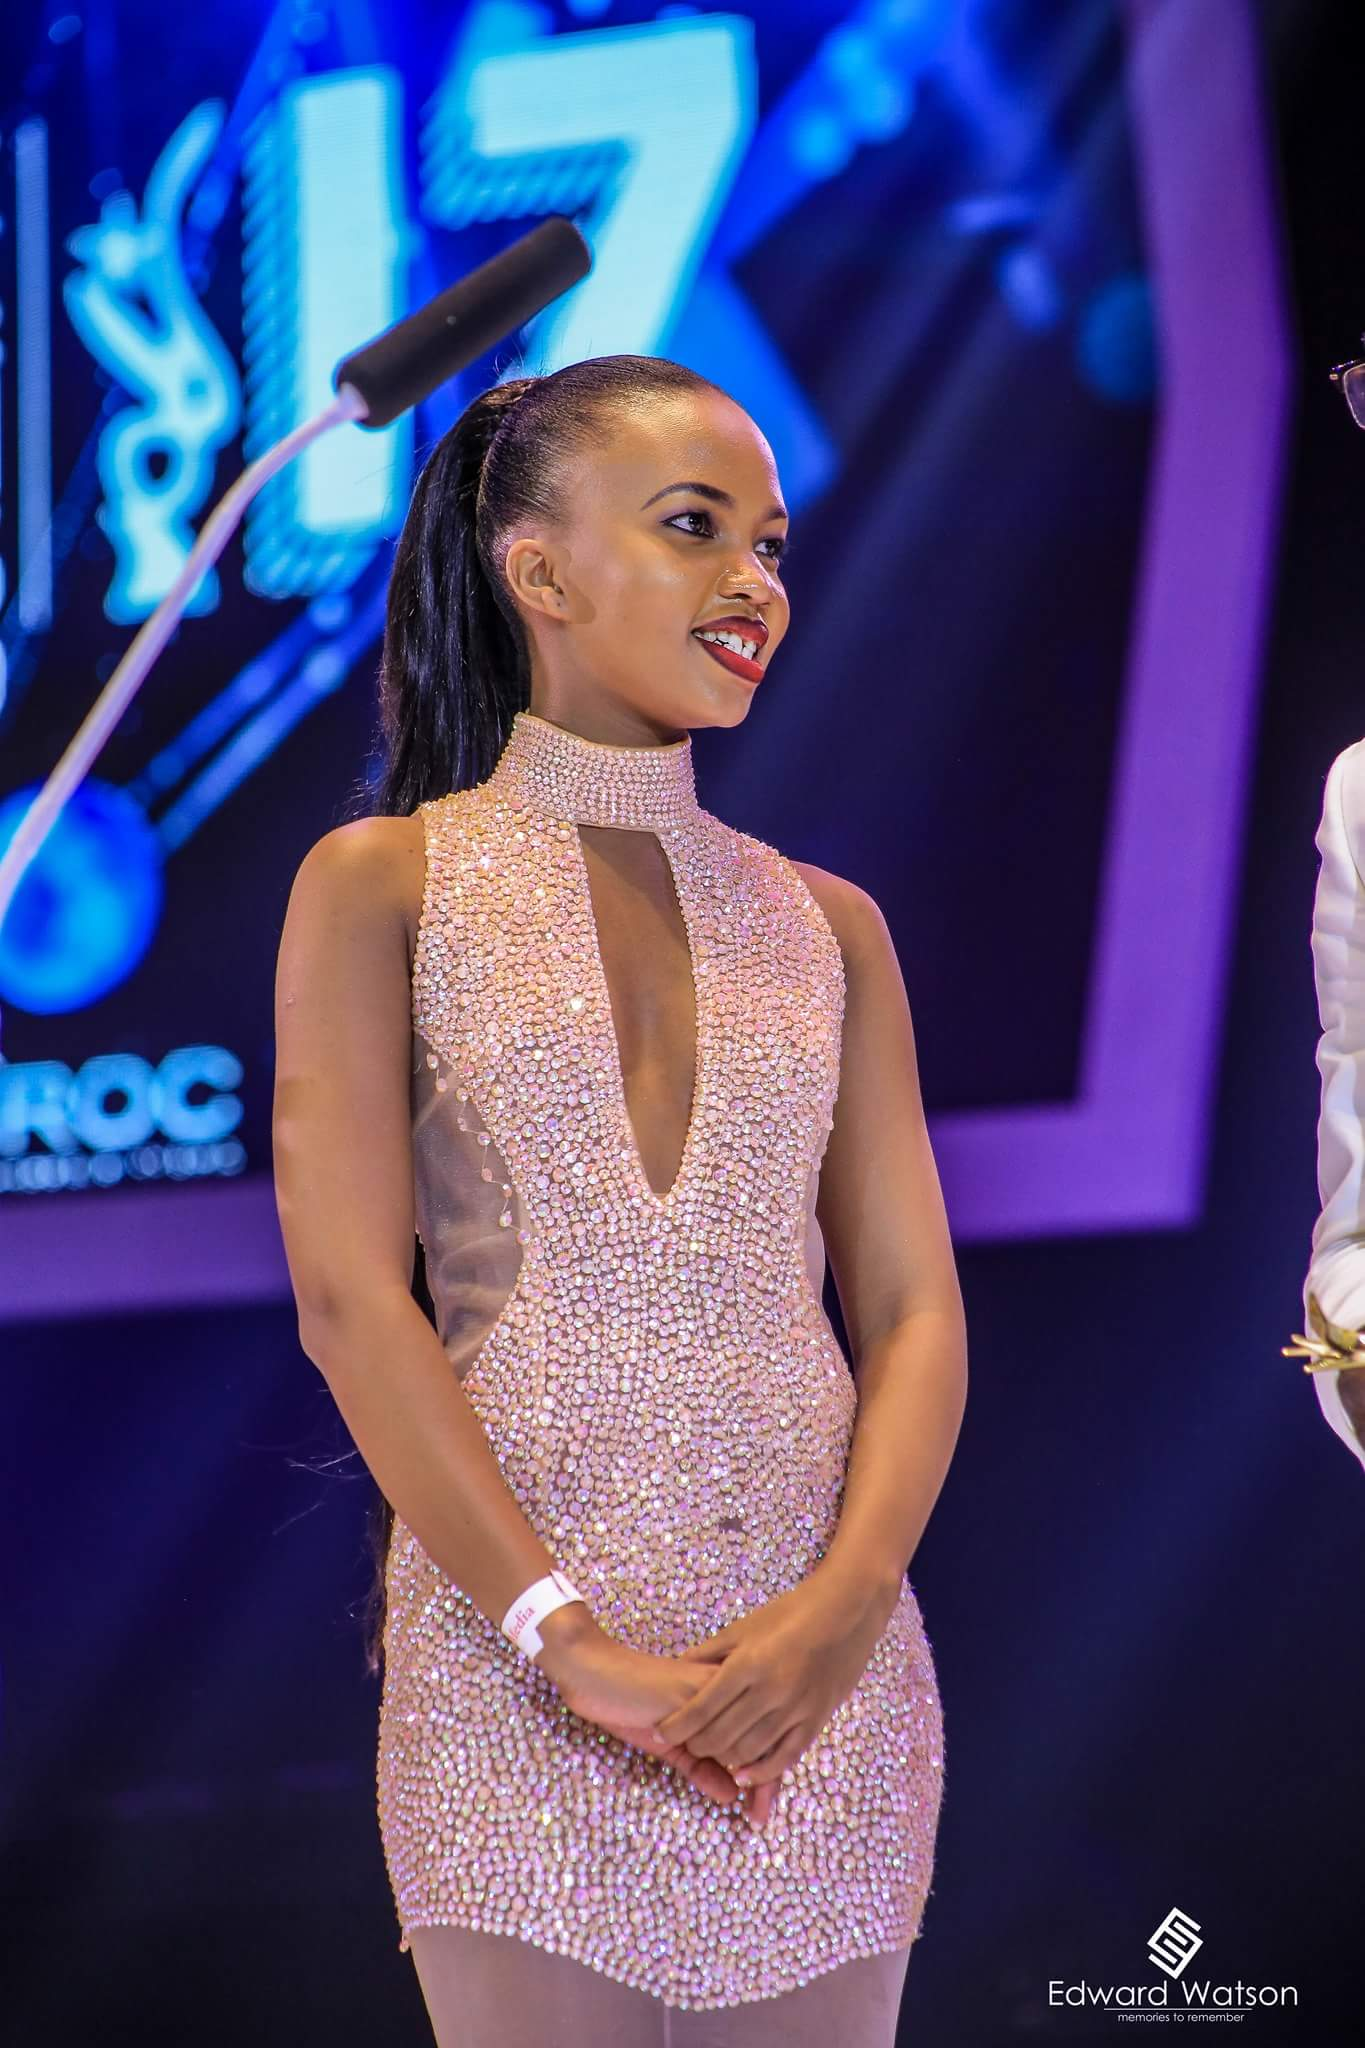 Sheila Gashumba Denies allegations of her Relationship with Fik Fameica